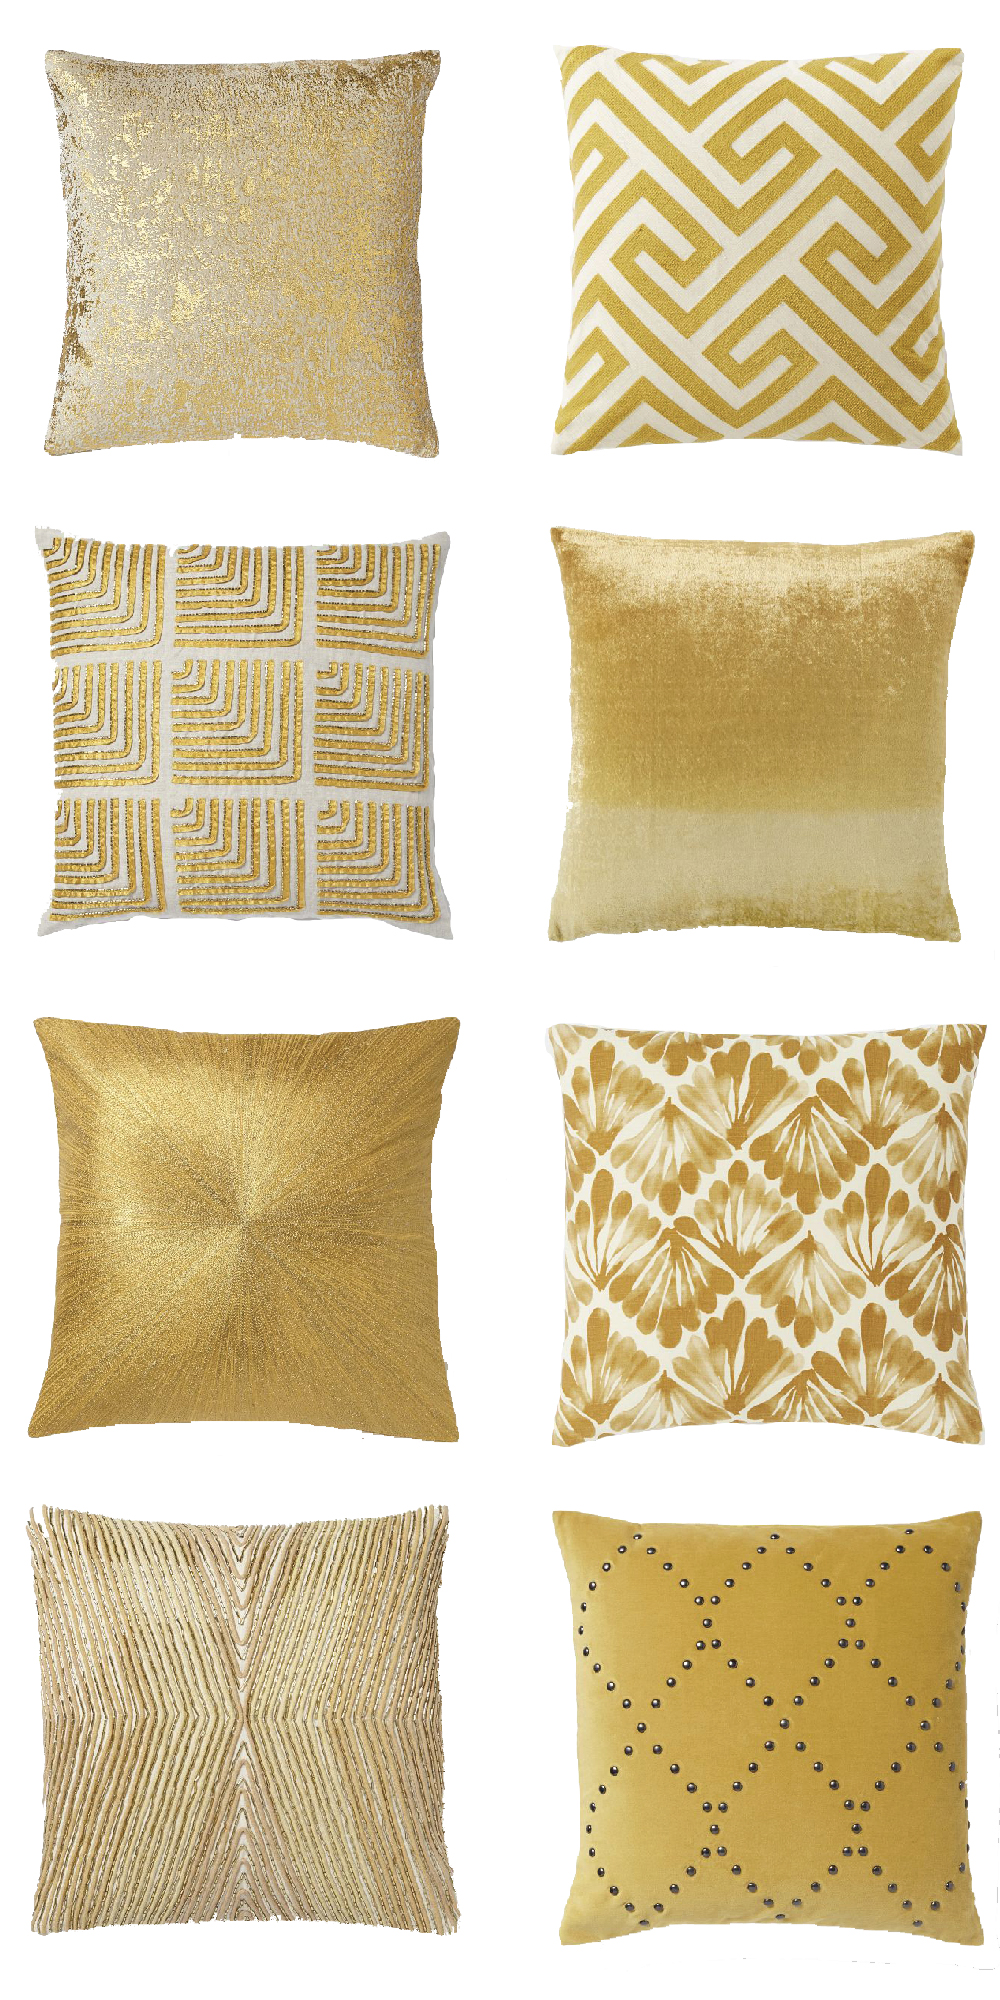 Throw Pillows, Gold Pillows, West Elm, Home Decor, Easy Ways To Decorate ...